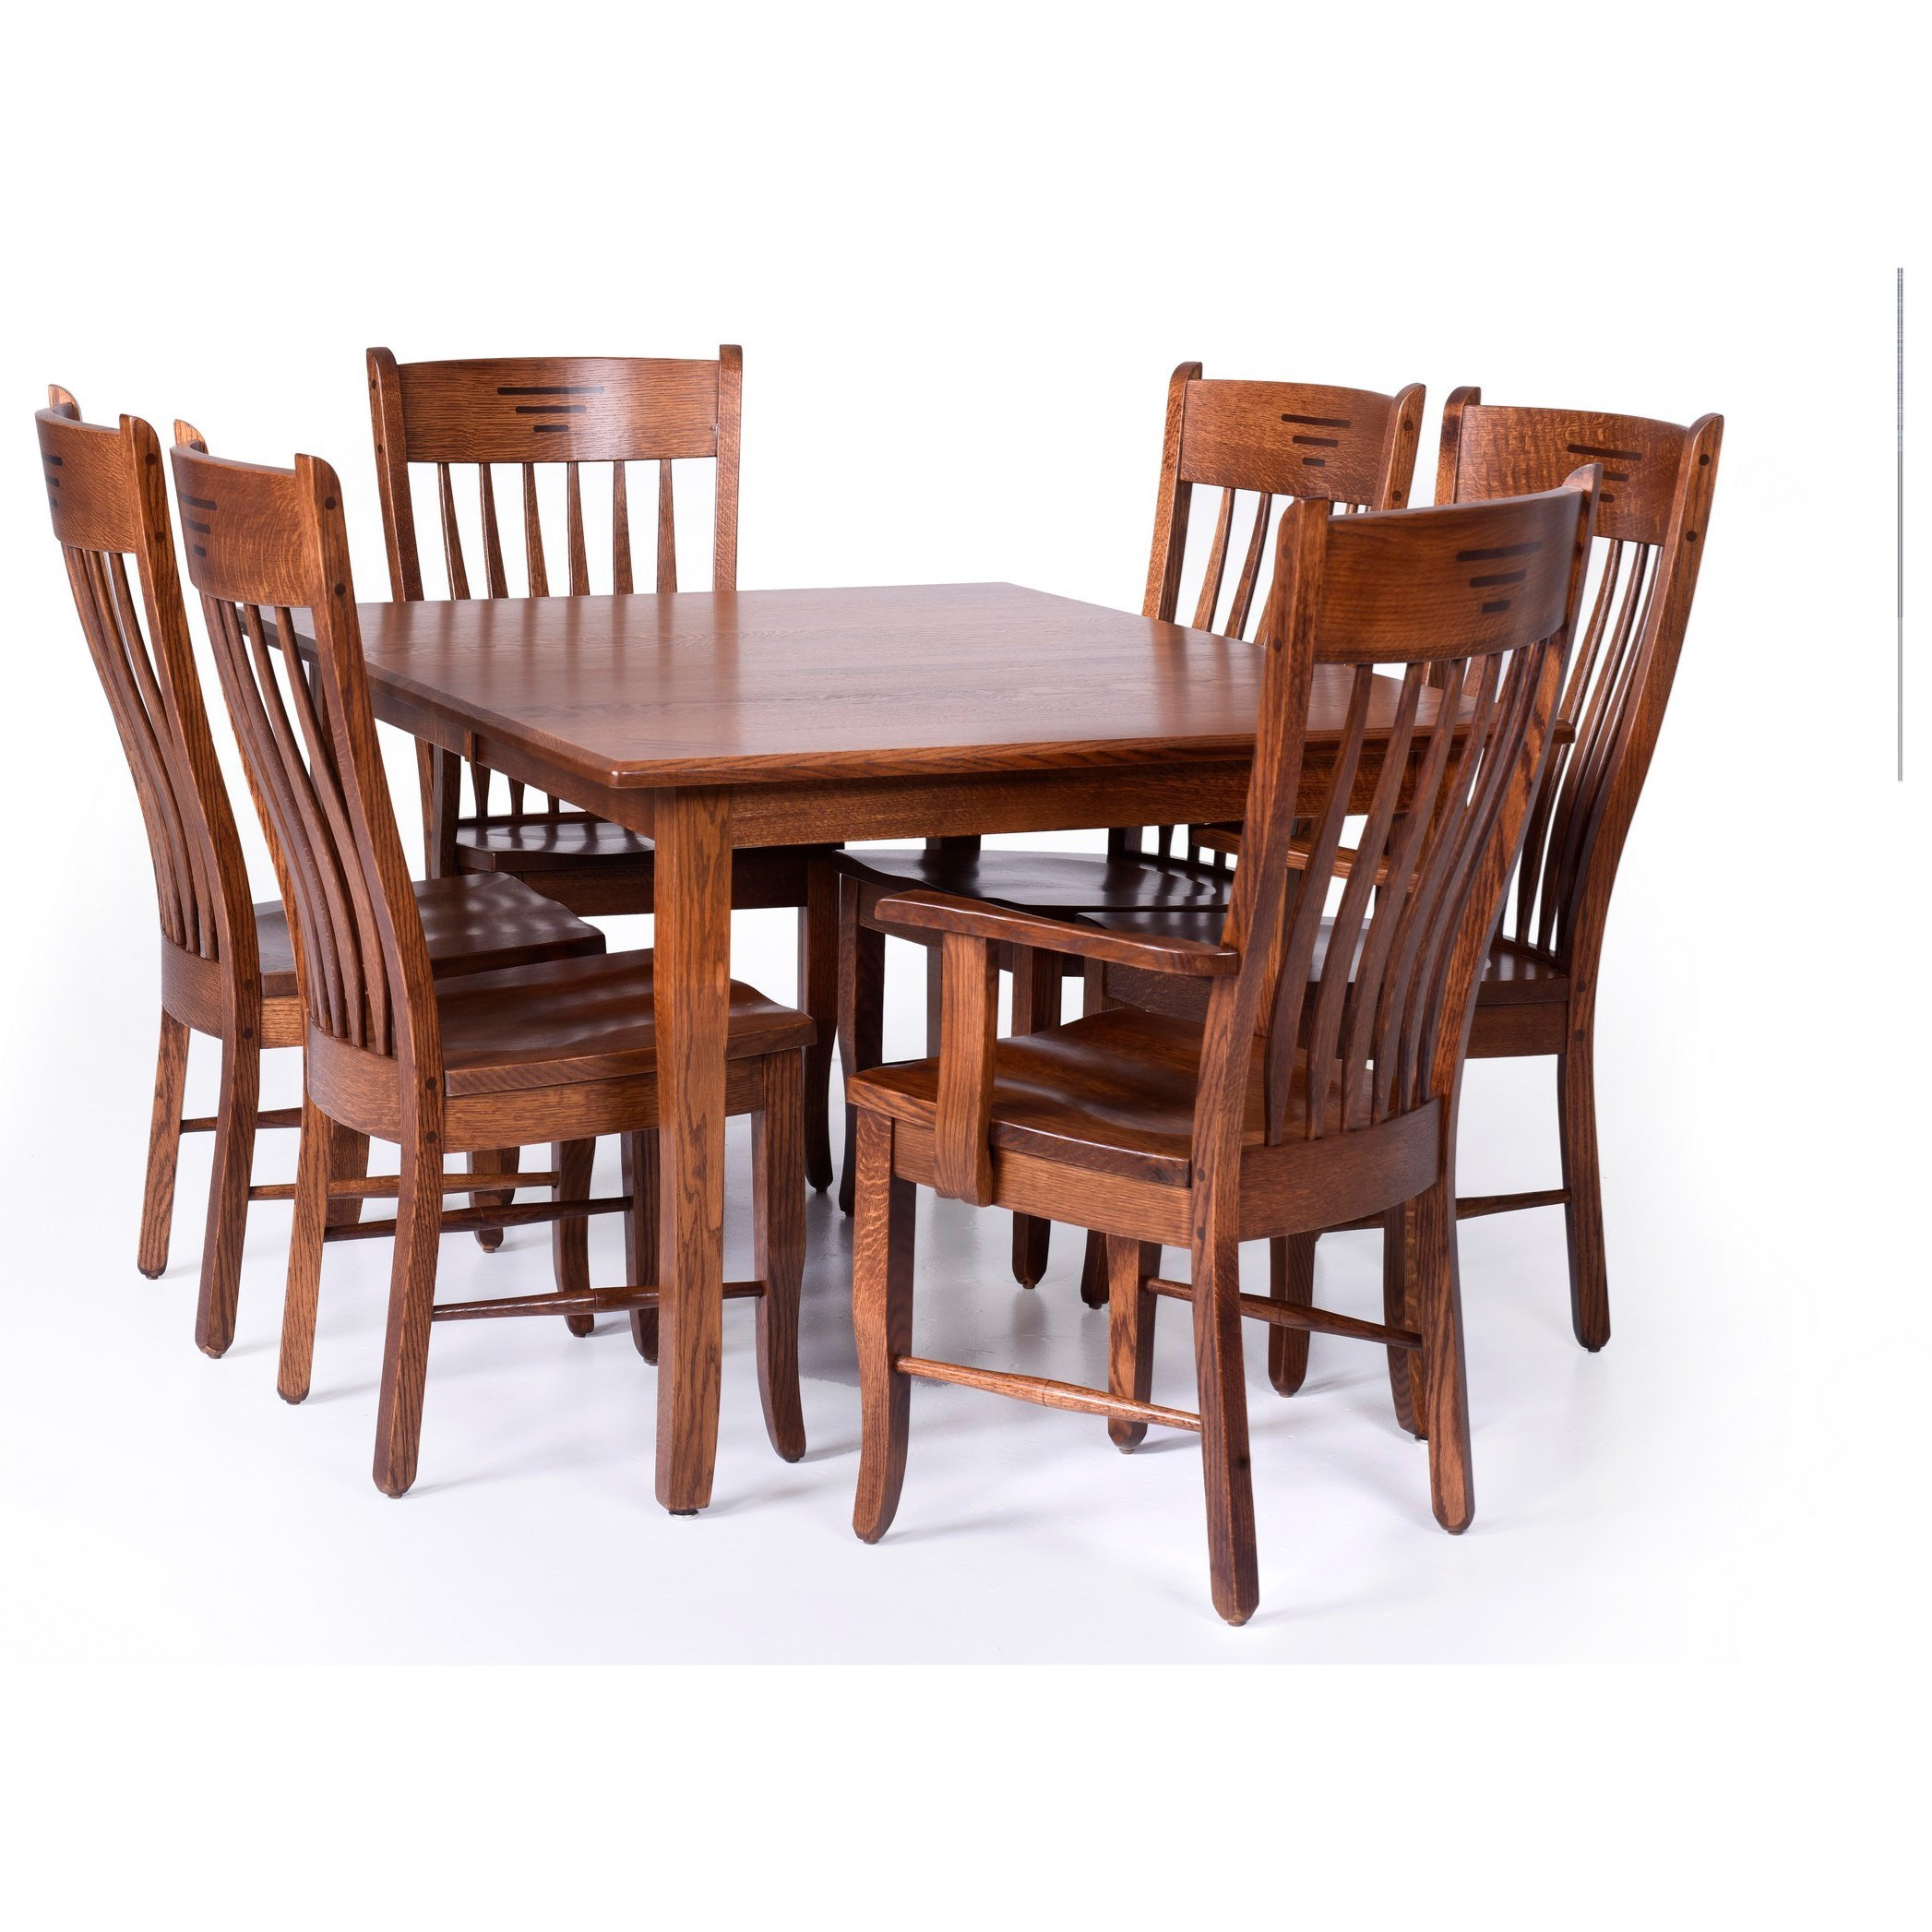 Classic Shaker Customizable 7 Piece Dining Set by Palettes by Winesburg at Dinette Depot